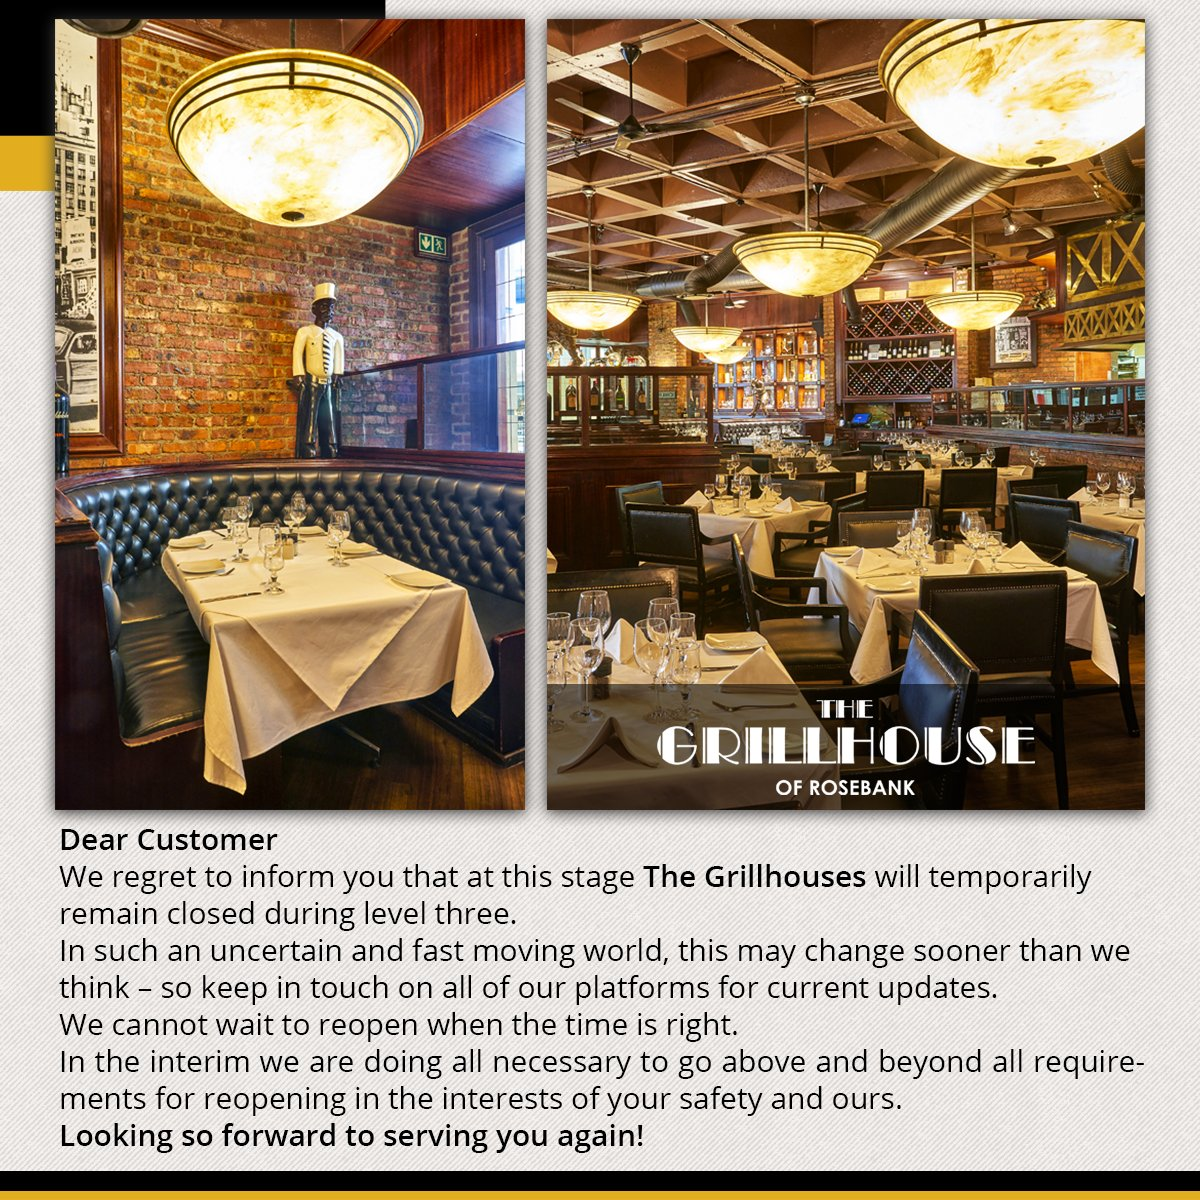 Dear Customer, We regret to inform you that at this stage The Grillhouses will temporarily remain closed during level three. 👇👇👇 #Covid_19SA #Coronavirus #Covid19 #Restaurant #Lockdown #Level3 #StaySafeStayHome #TheGrillhouse #Melrosearch #StaySafe #SouthAfricaLockdown https://t.co/3sOohRKHVD